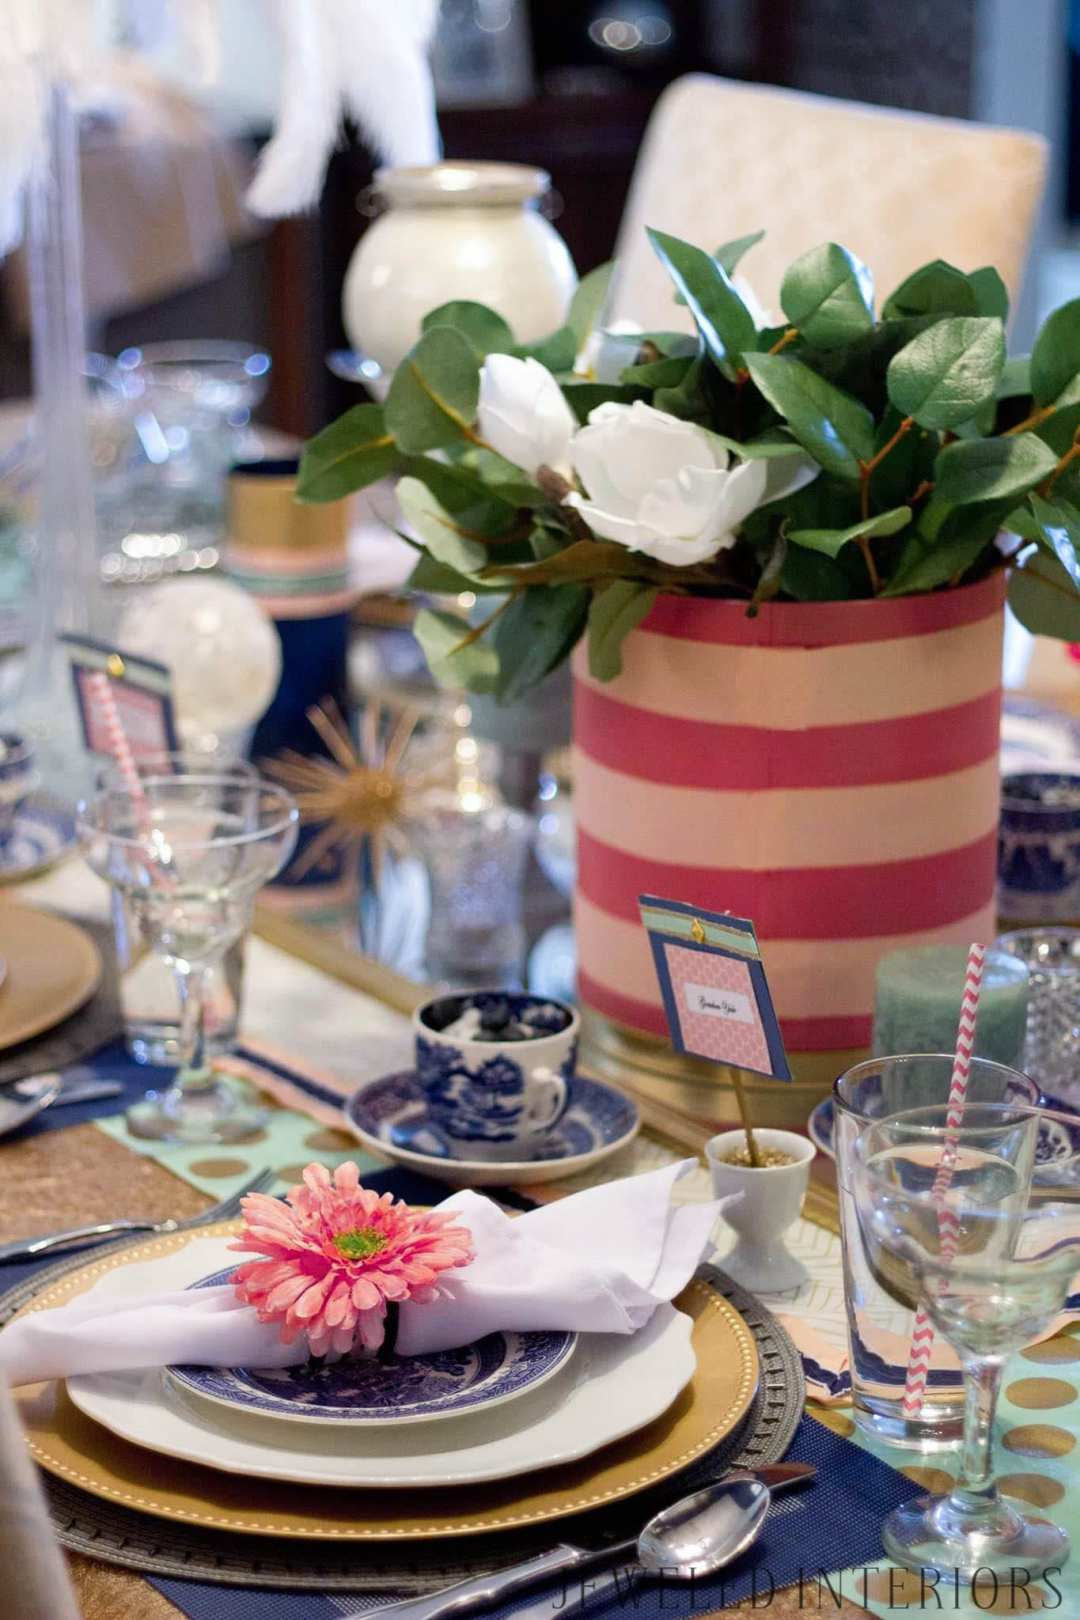 Blue willow patterned China, tea party, Jeweled Interiors, polka dots, flower, napkin, paper straw, gold, charger, sequin, table cloth,